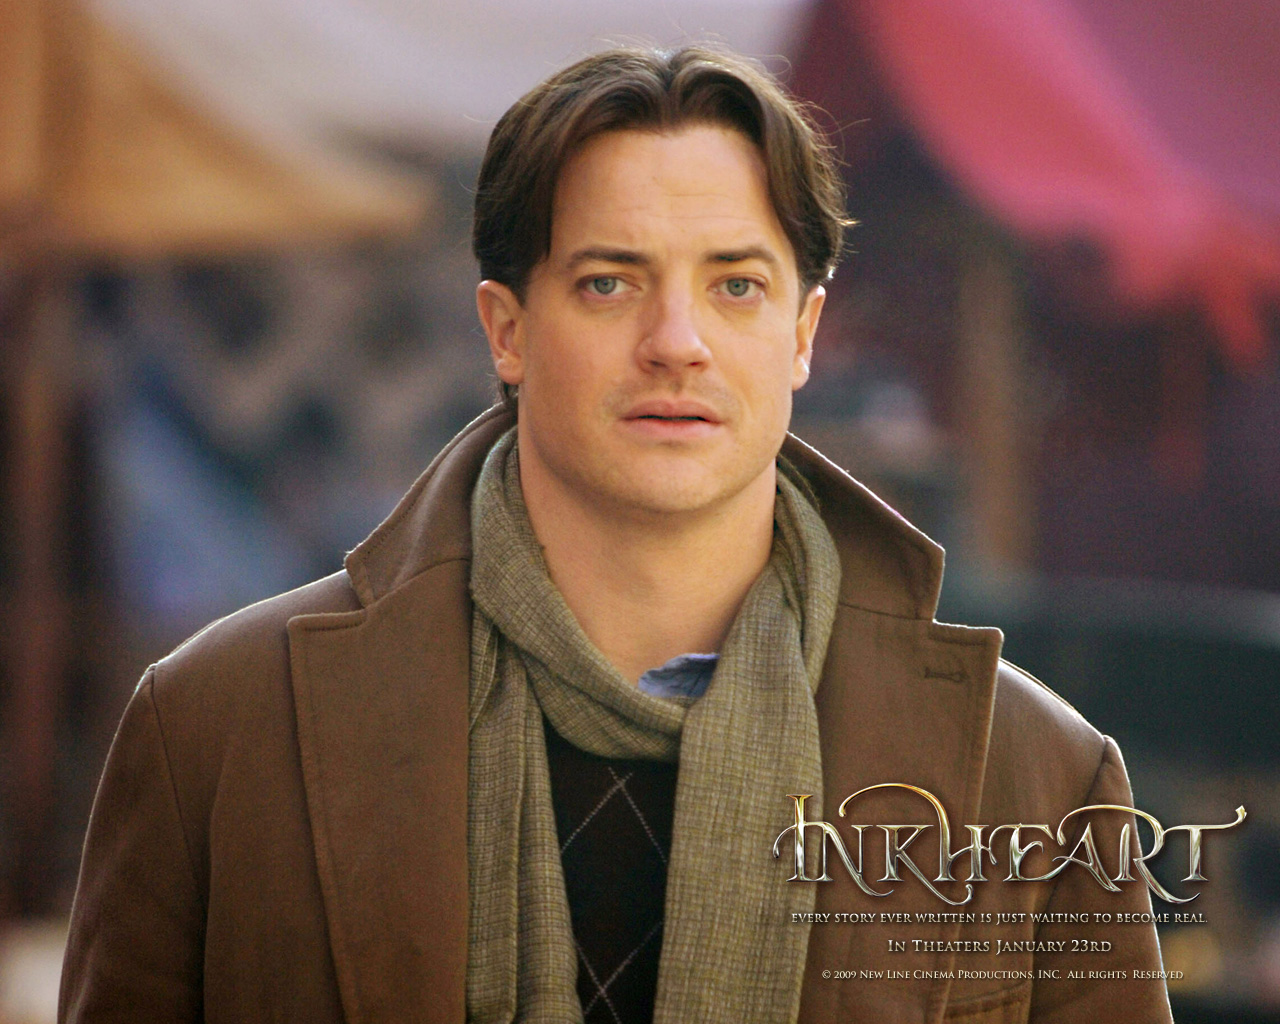 Brendan Fraser in The Nut Job 2014